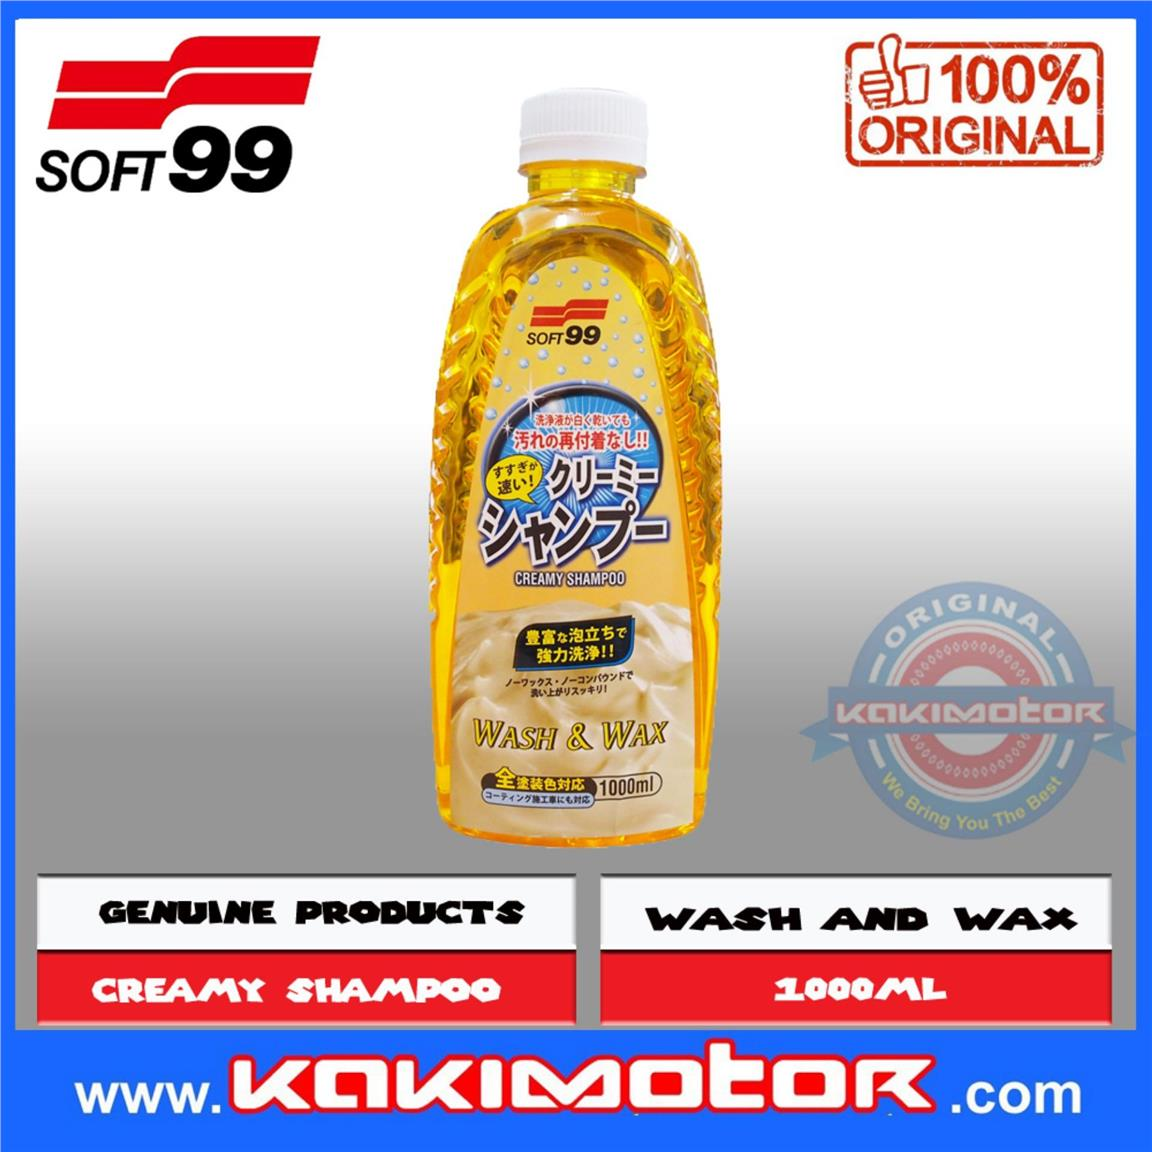 Soft 99 / Soft99 Creamy Shampoo Car Wash & Wax 1000ML